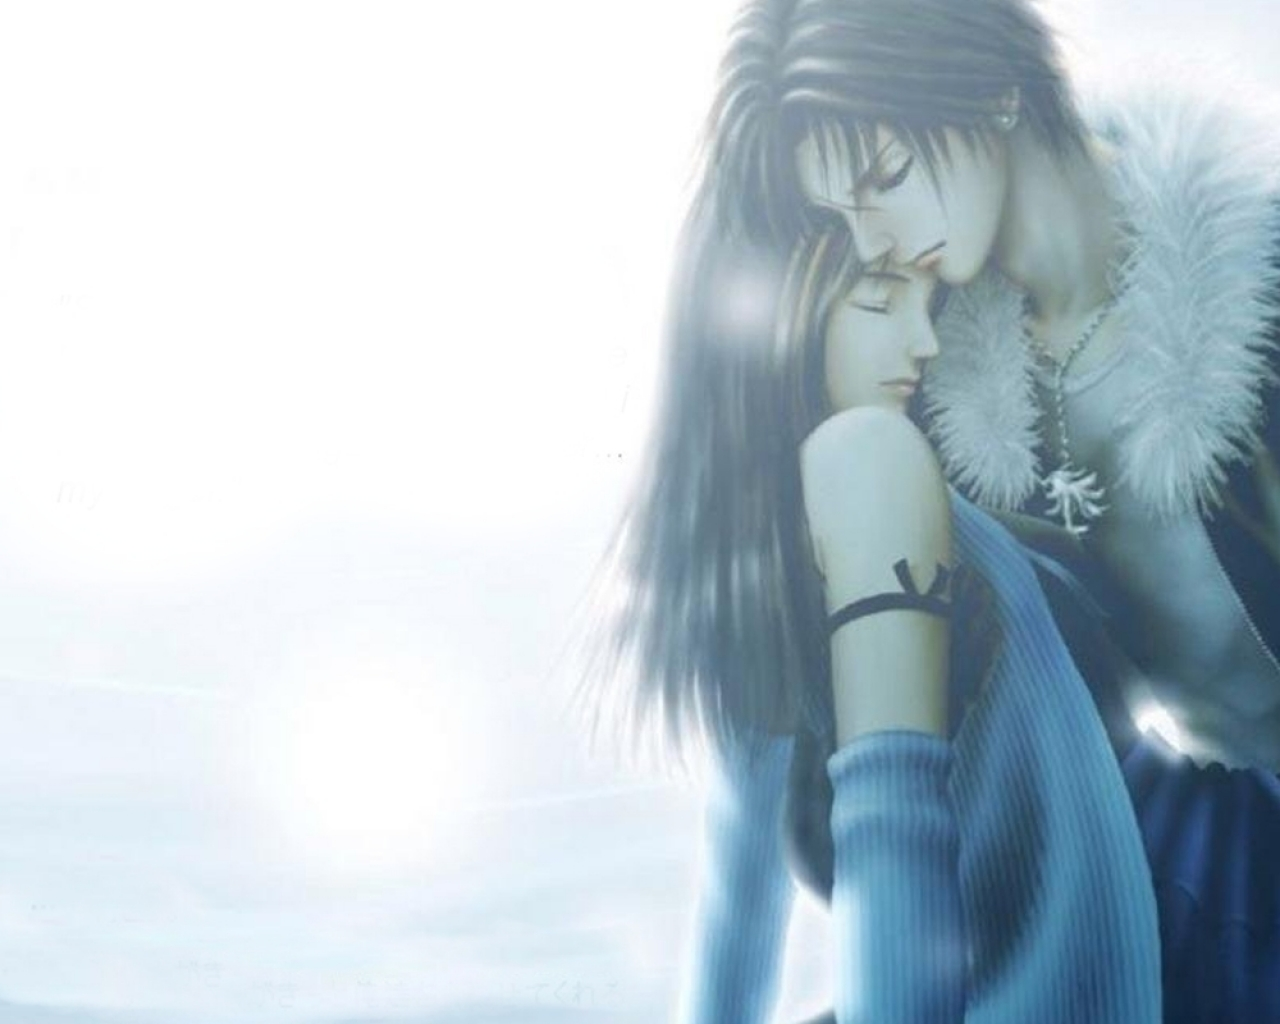 Final-Fantasy-VIII-wallpaper-wp4004743